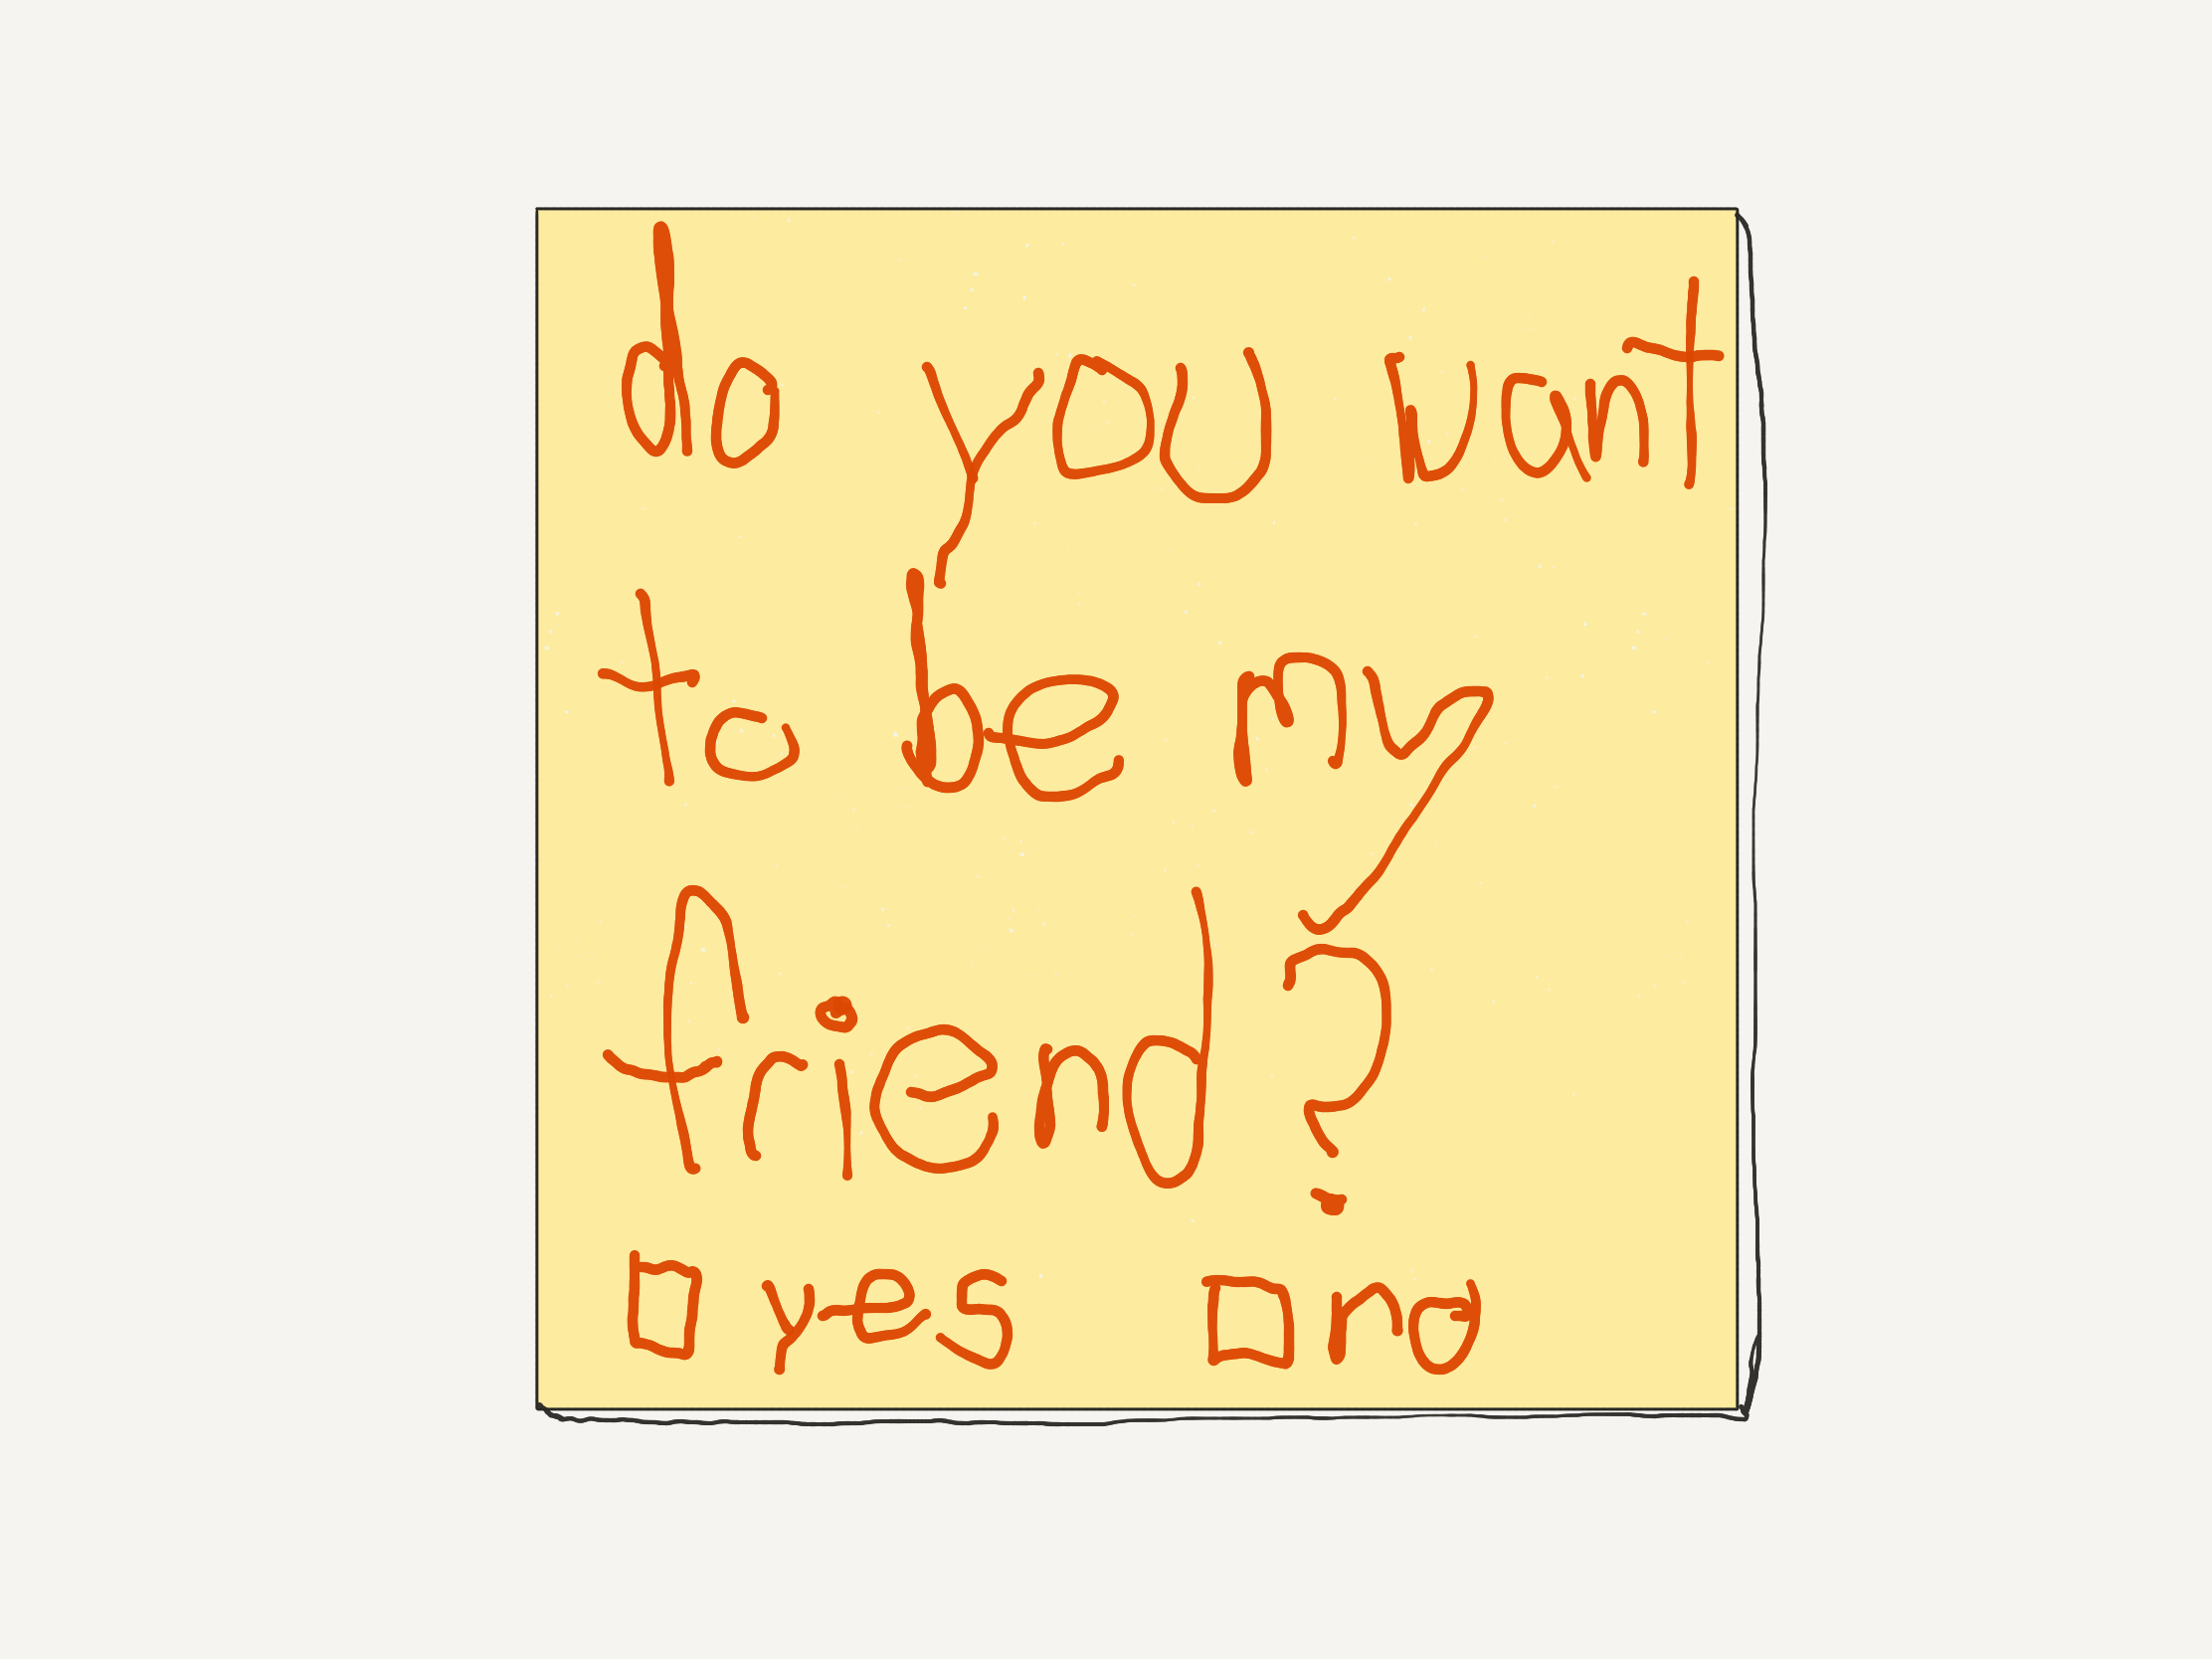 Paper.Anchors of belonging.44.png